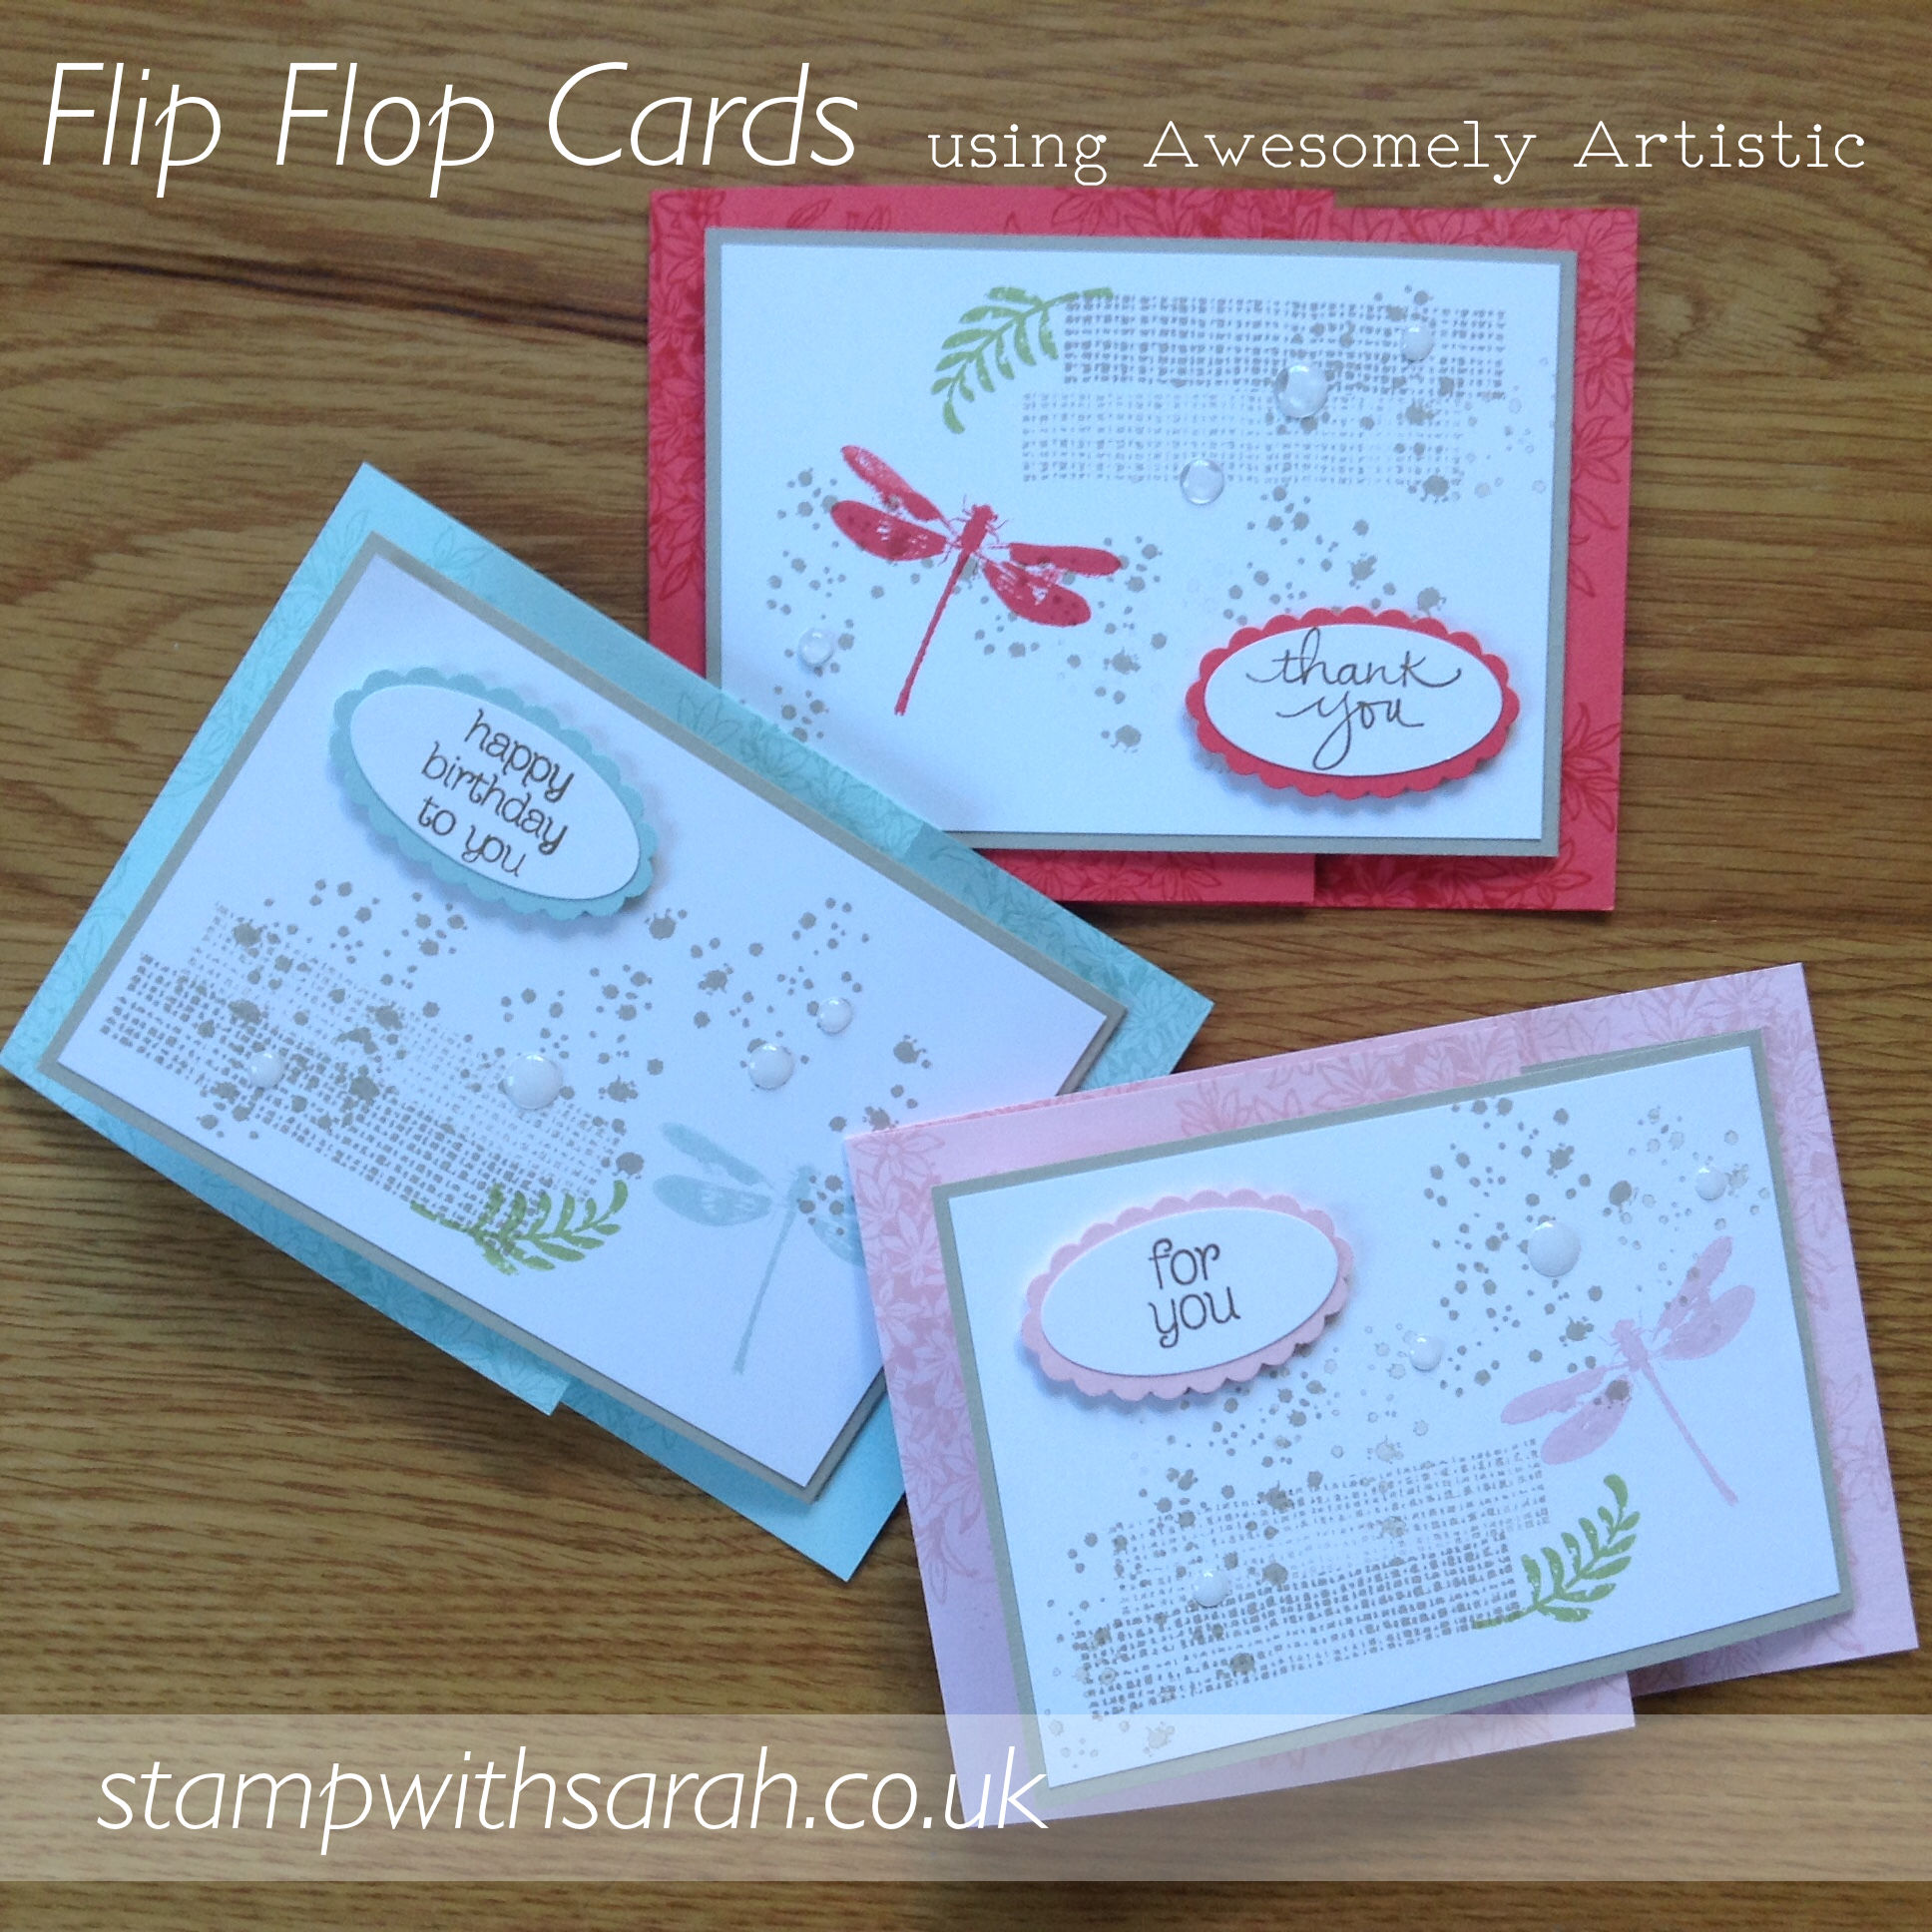 Flip Flop Cards using Awesomely Artistic stamp set by Stampin' Up! UK